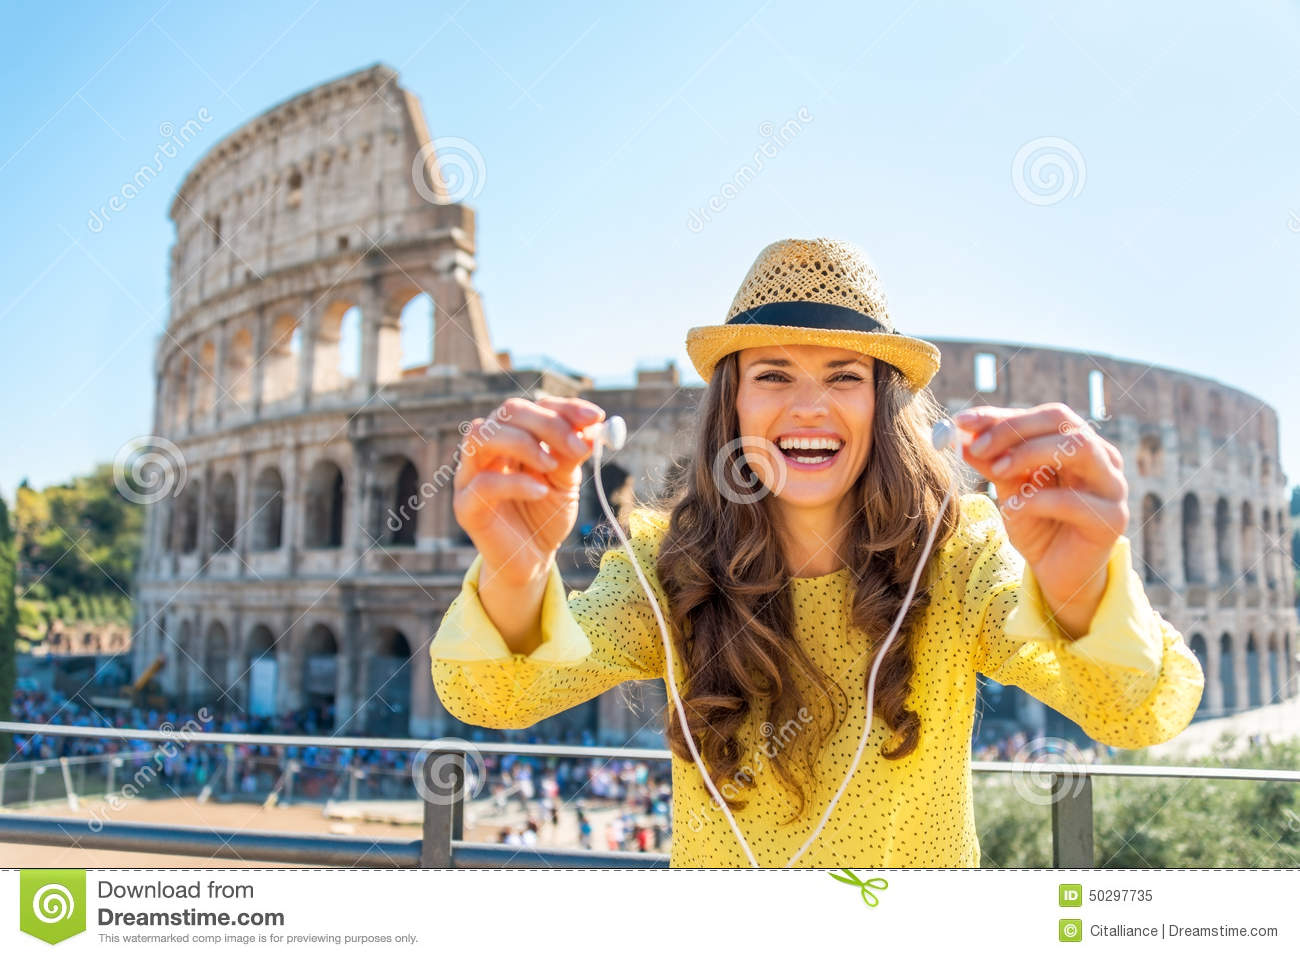 Tickets for the Colosseum, Rome, Italy: tickitaly.com